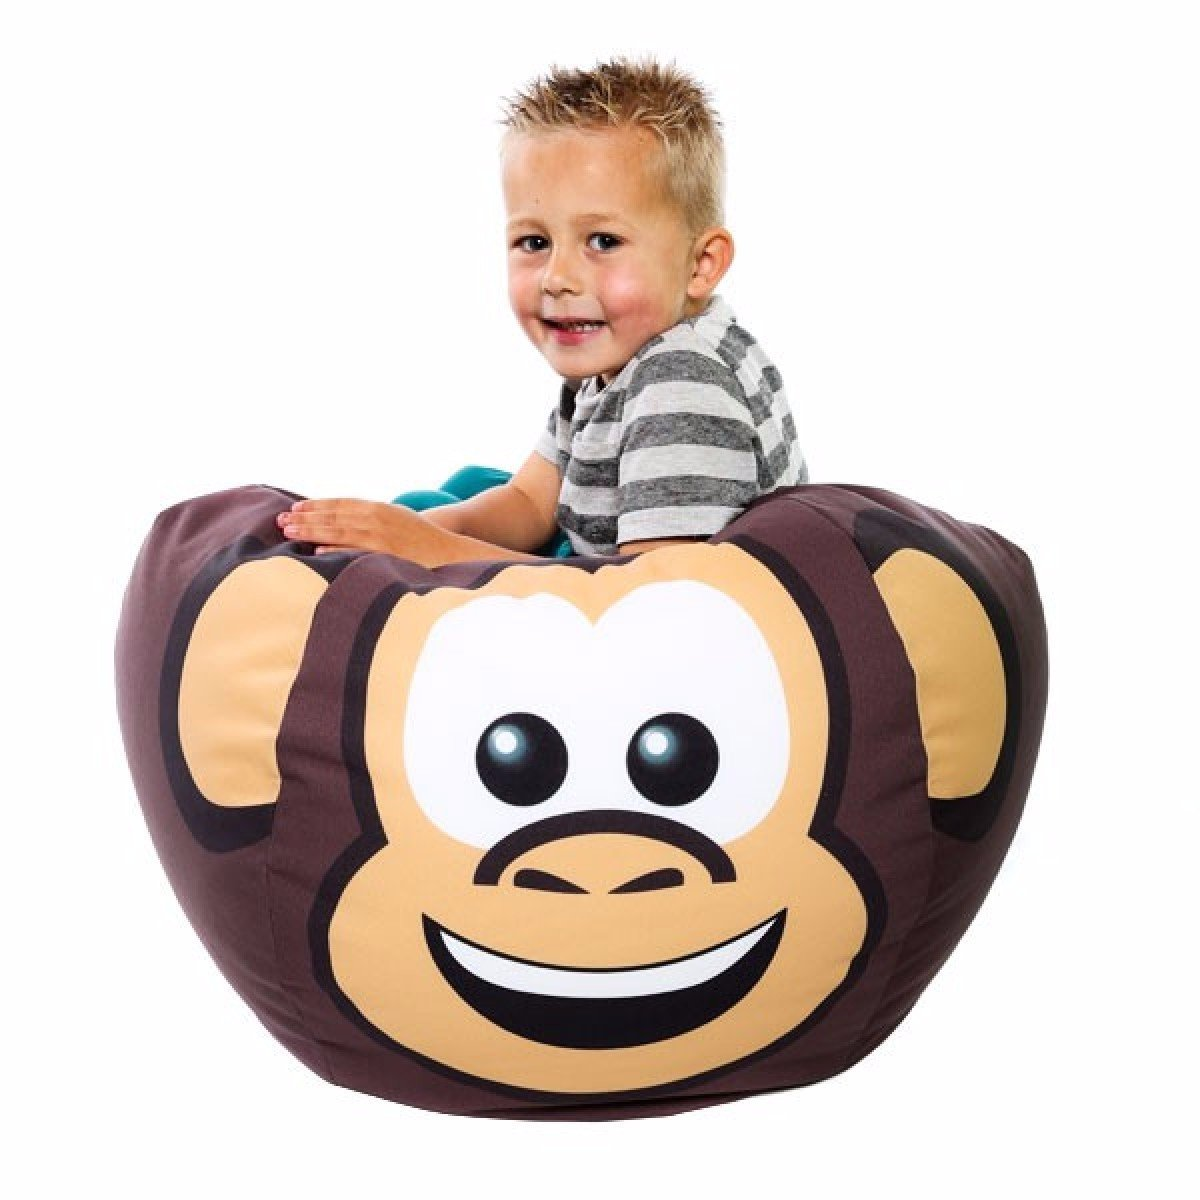 RU Comfy Kids Bean Bag, Fabric, Marvin The Monkey, Small PRBULL-SML